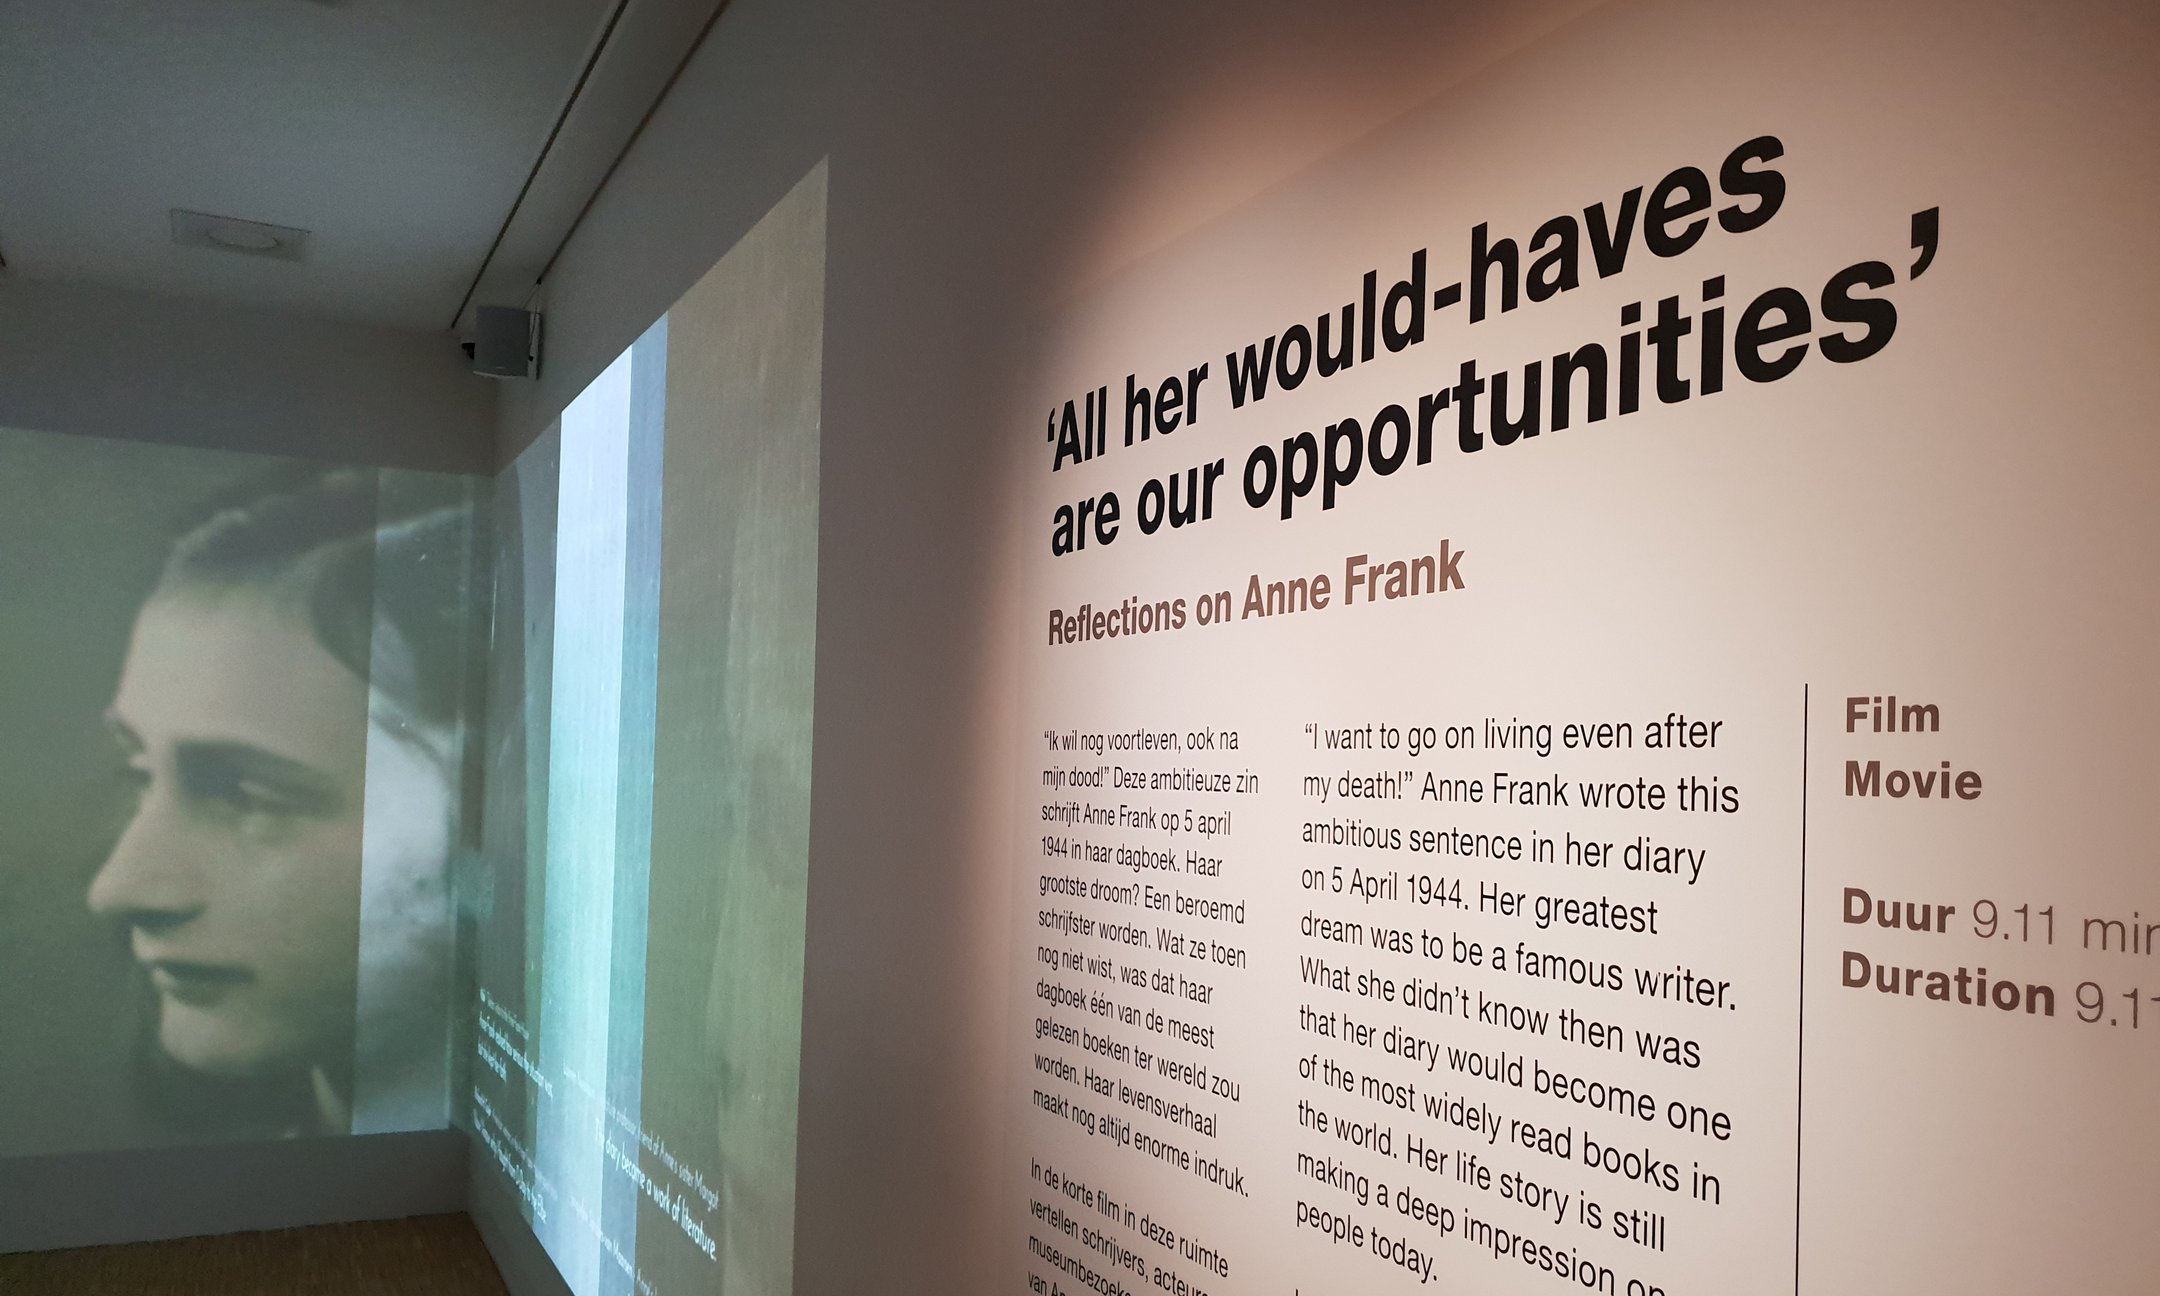 The Reflections exhibition in the Anne Frank House